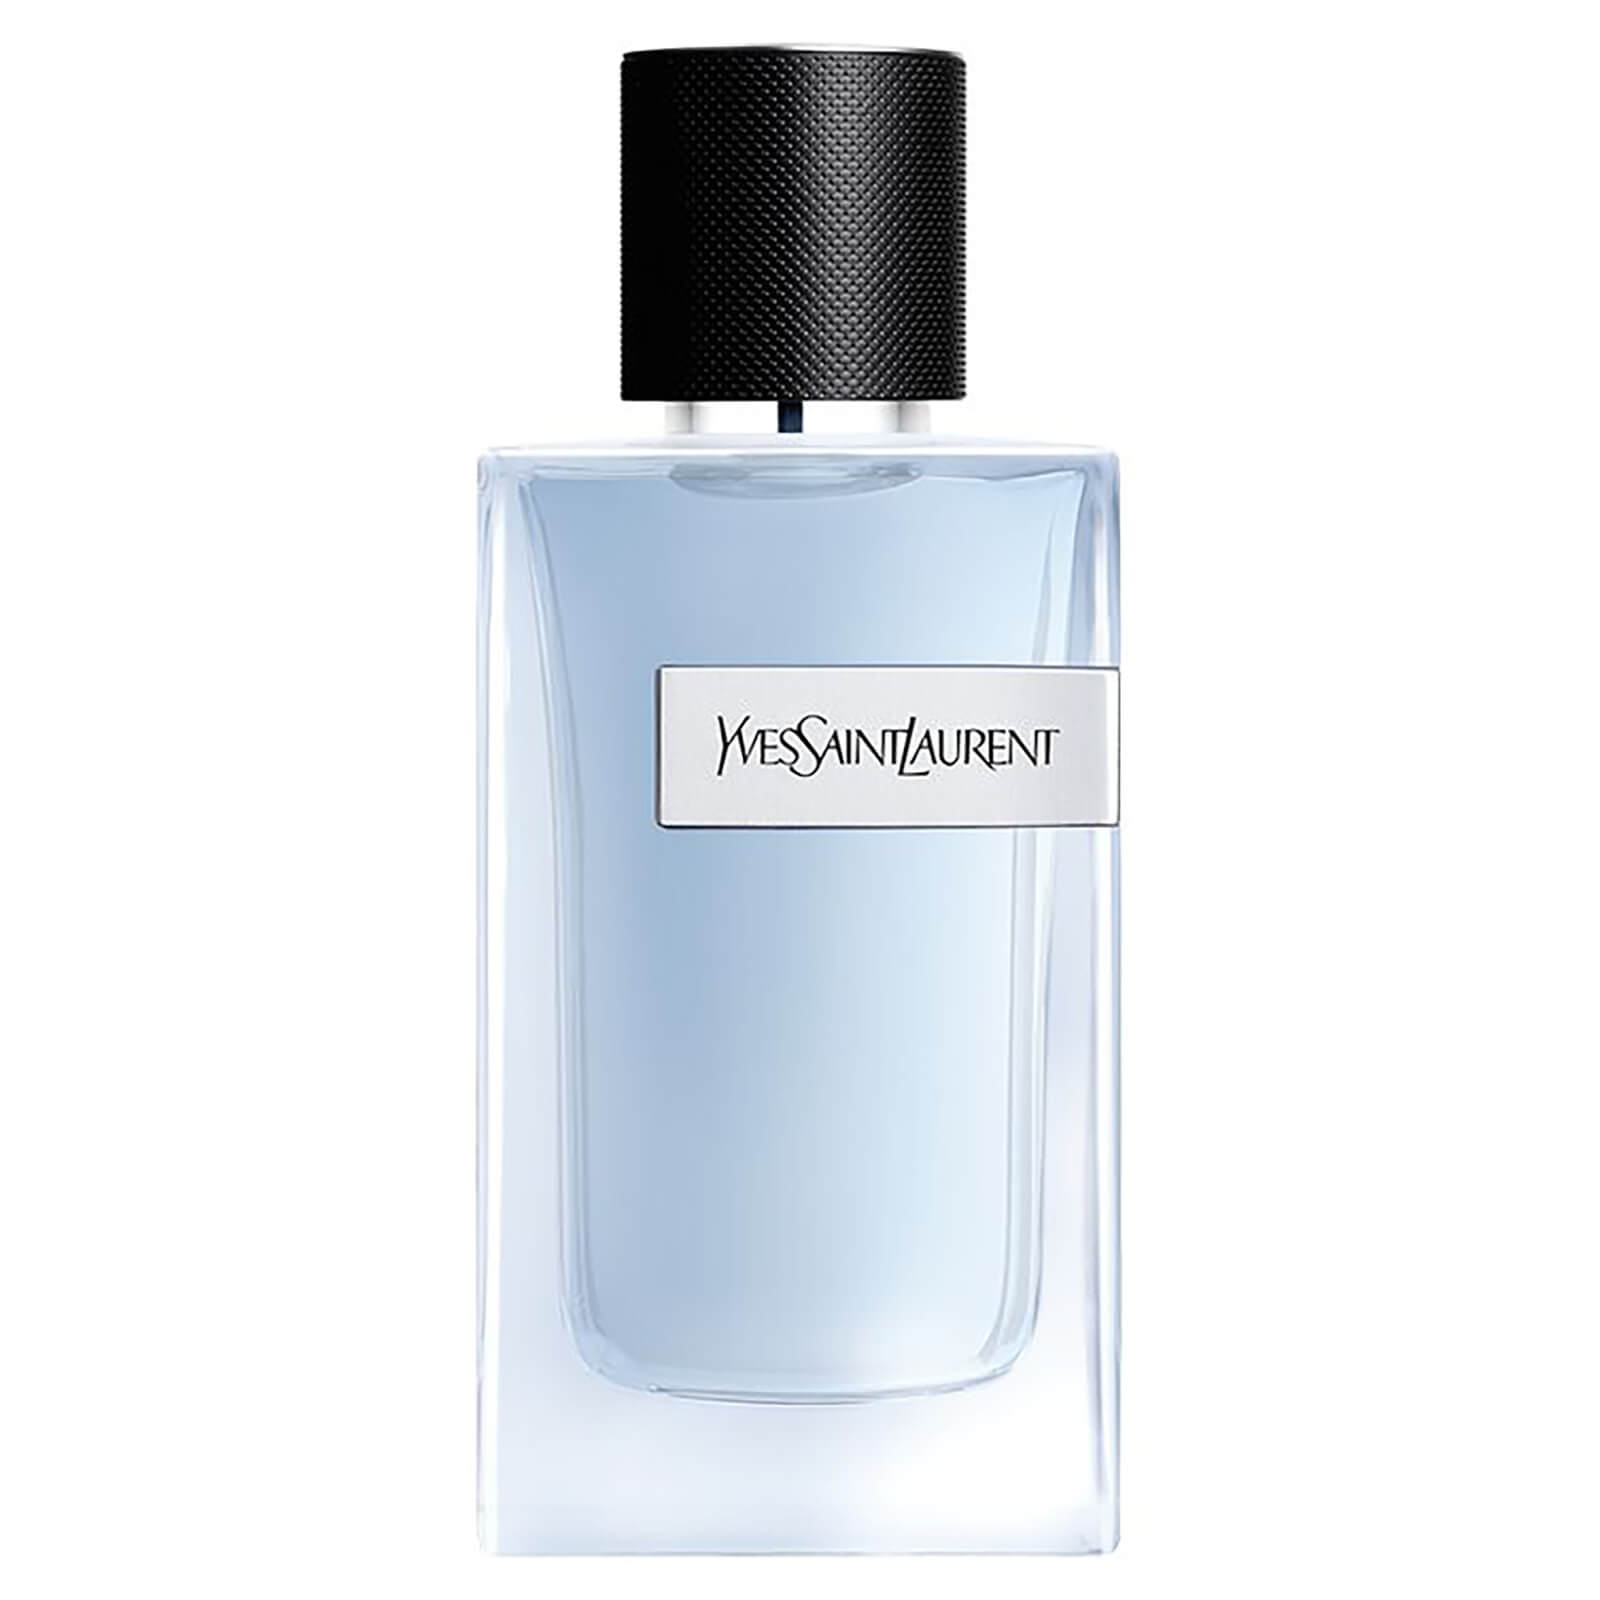 Yves Saint Laurent Y lozione dopobarba 100 ml